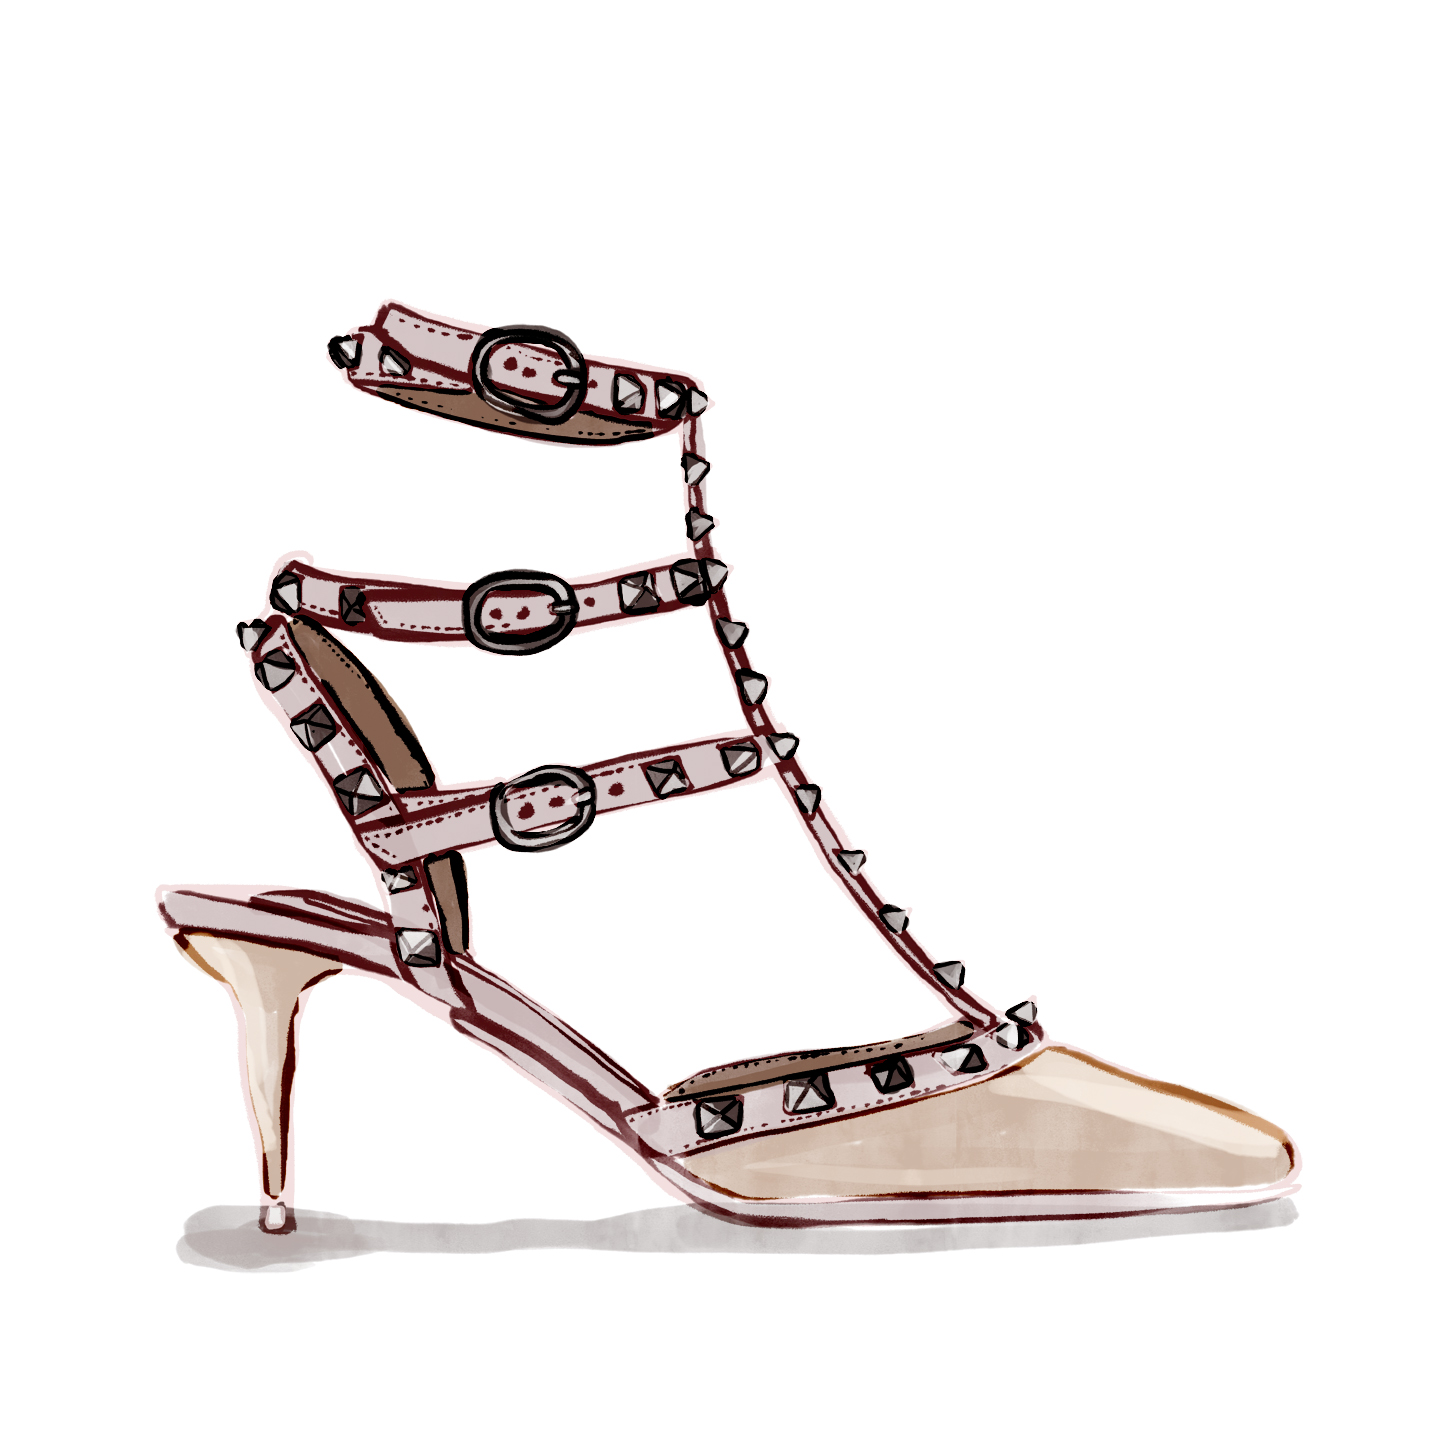 The height of a Valentino kitten heel